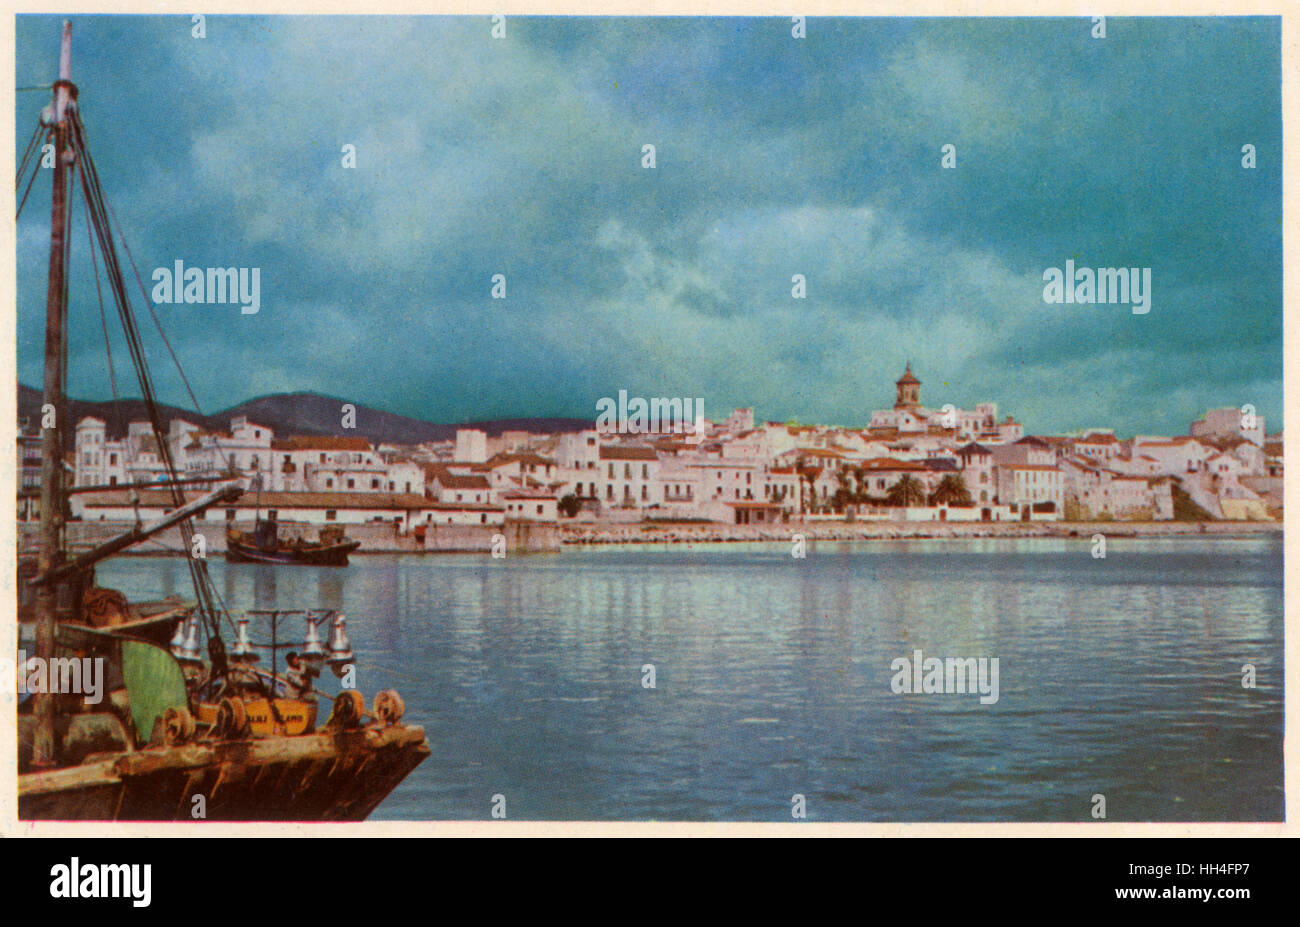 Algeciras, Spain - Partial View from the Port. - Stock Image